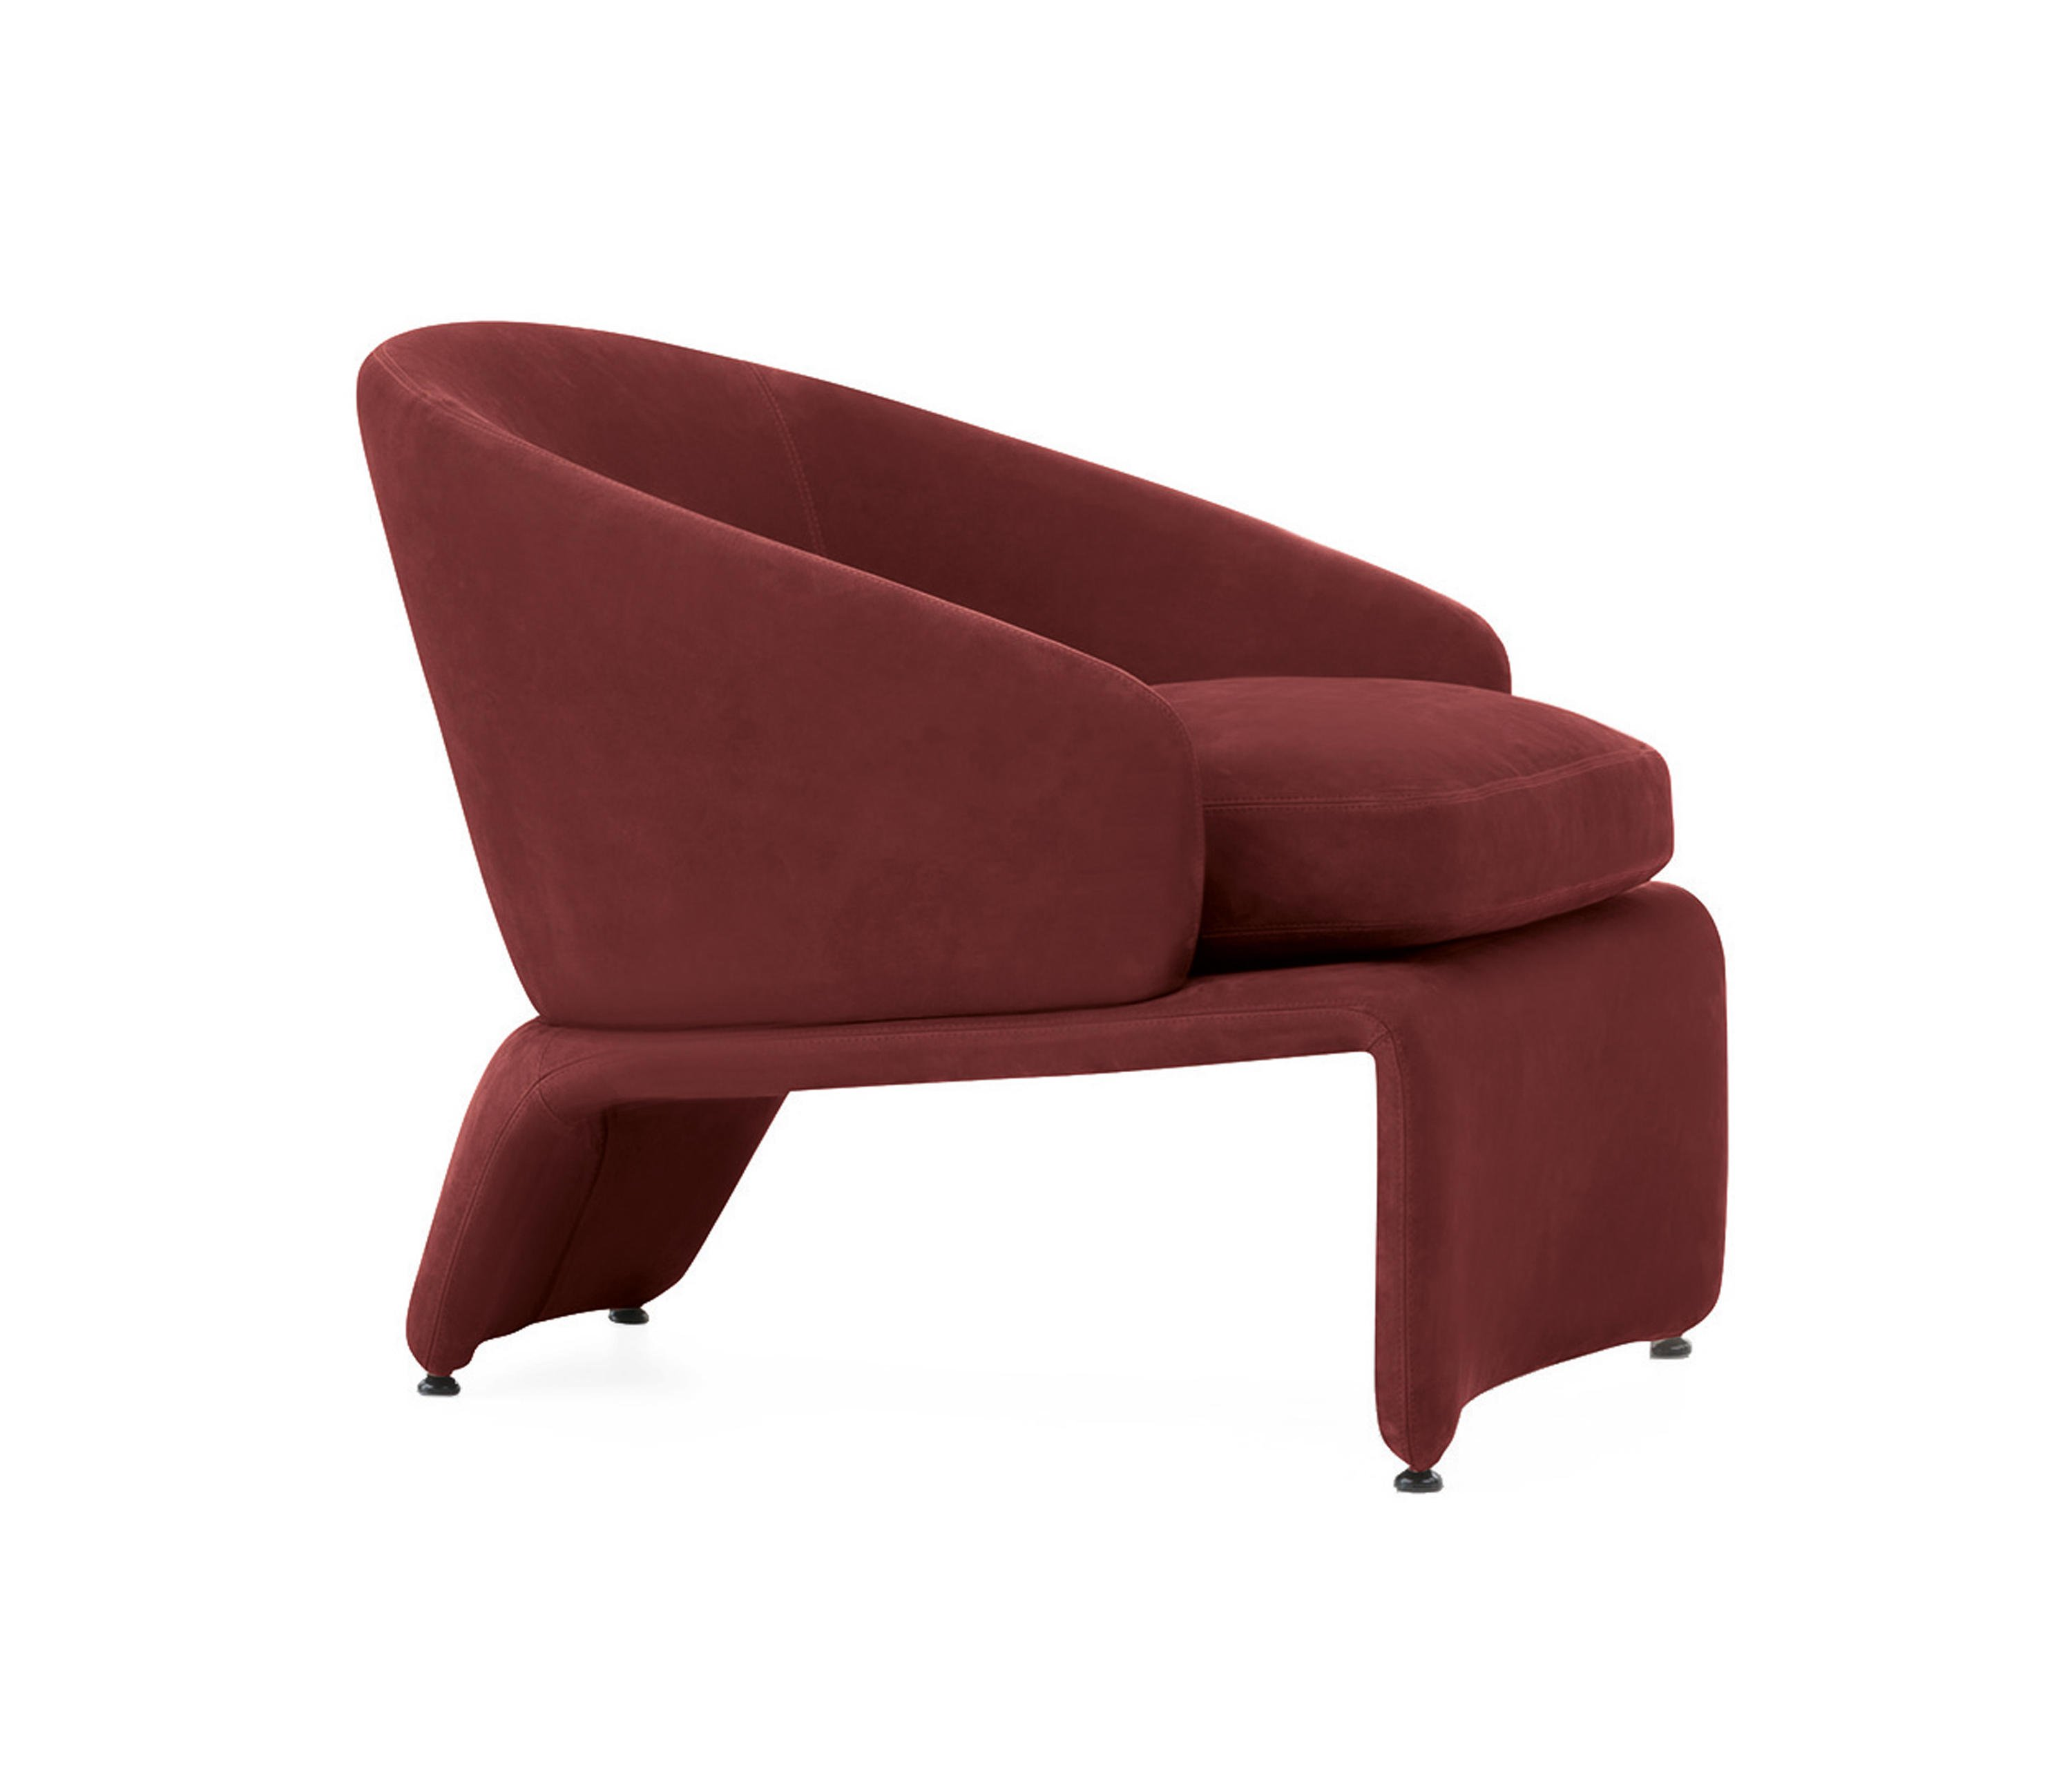 Halley Armchair by Minotti